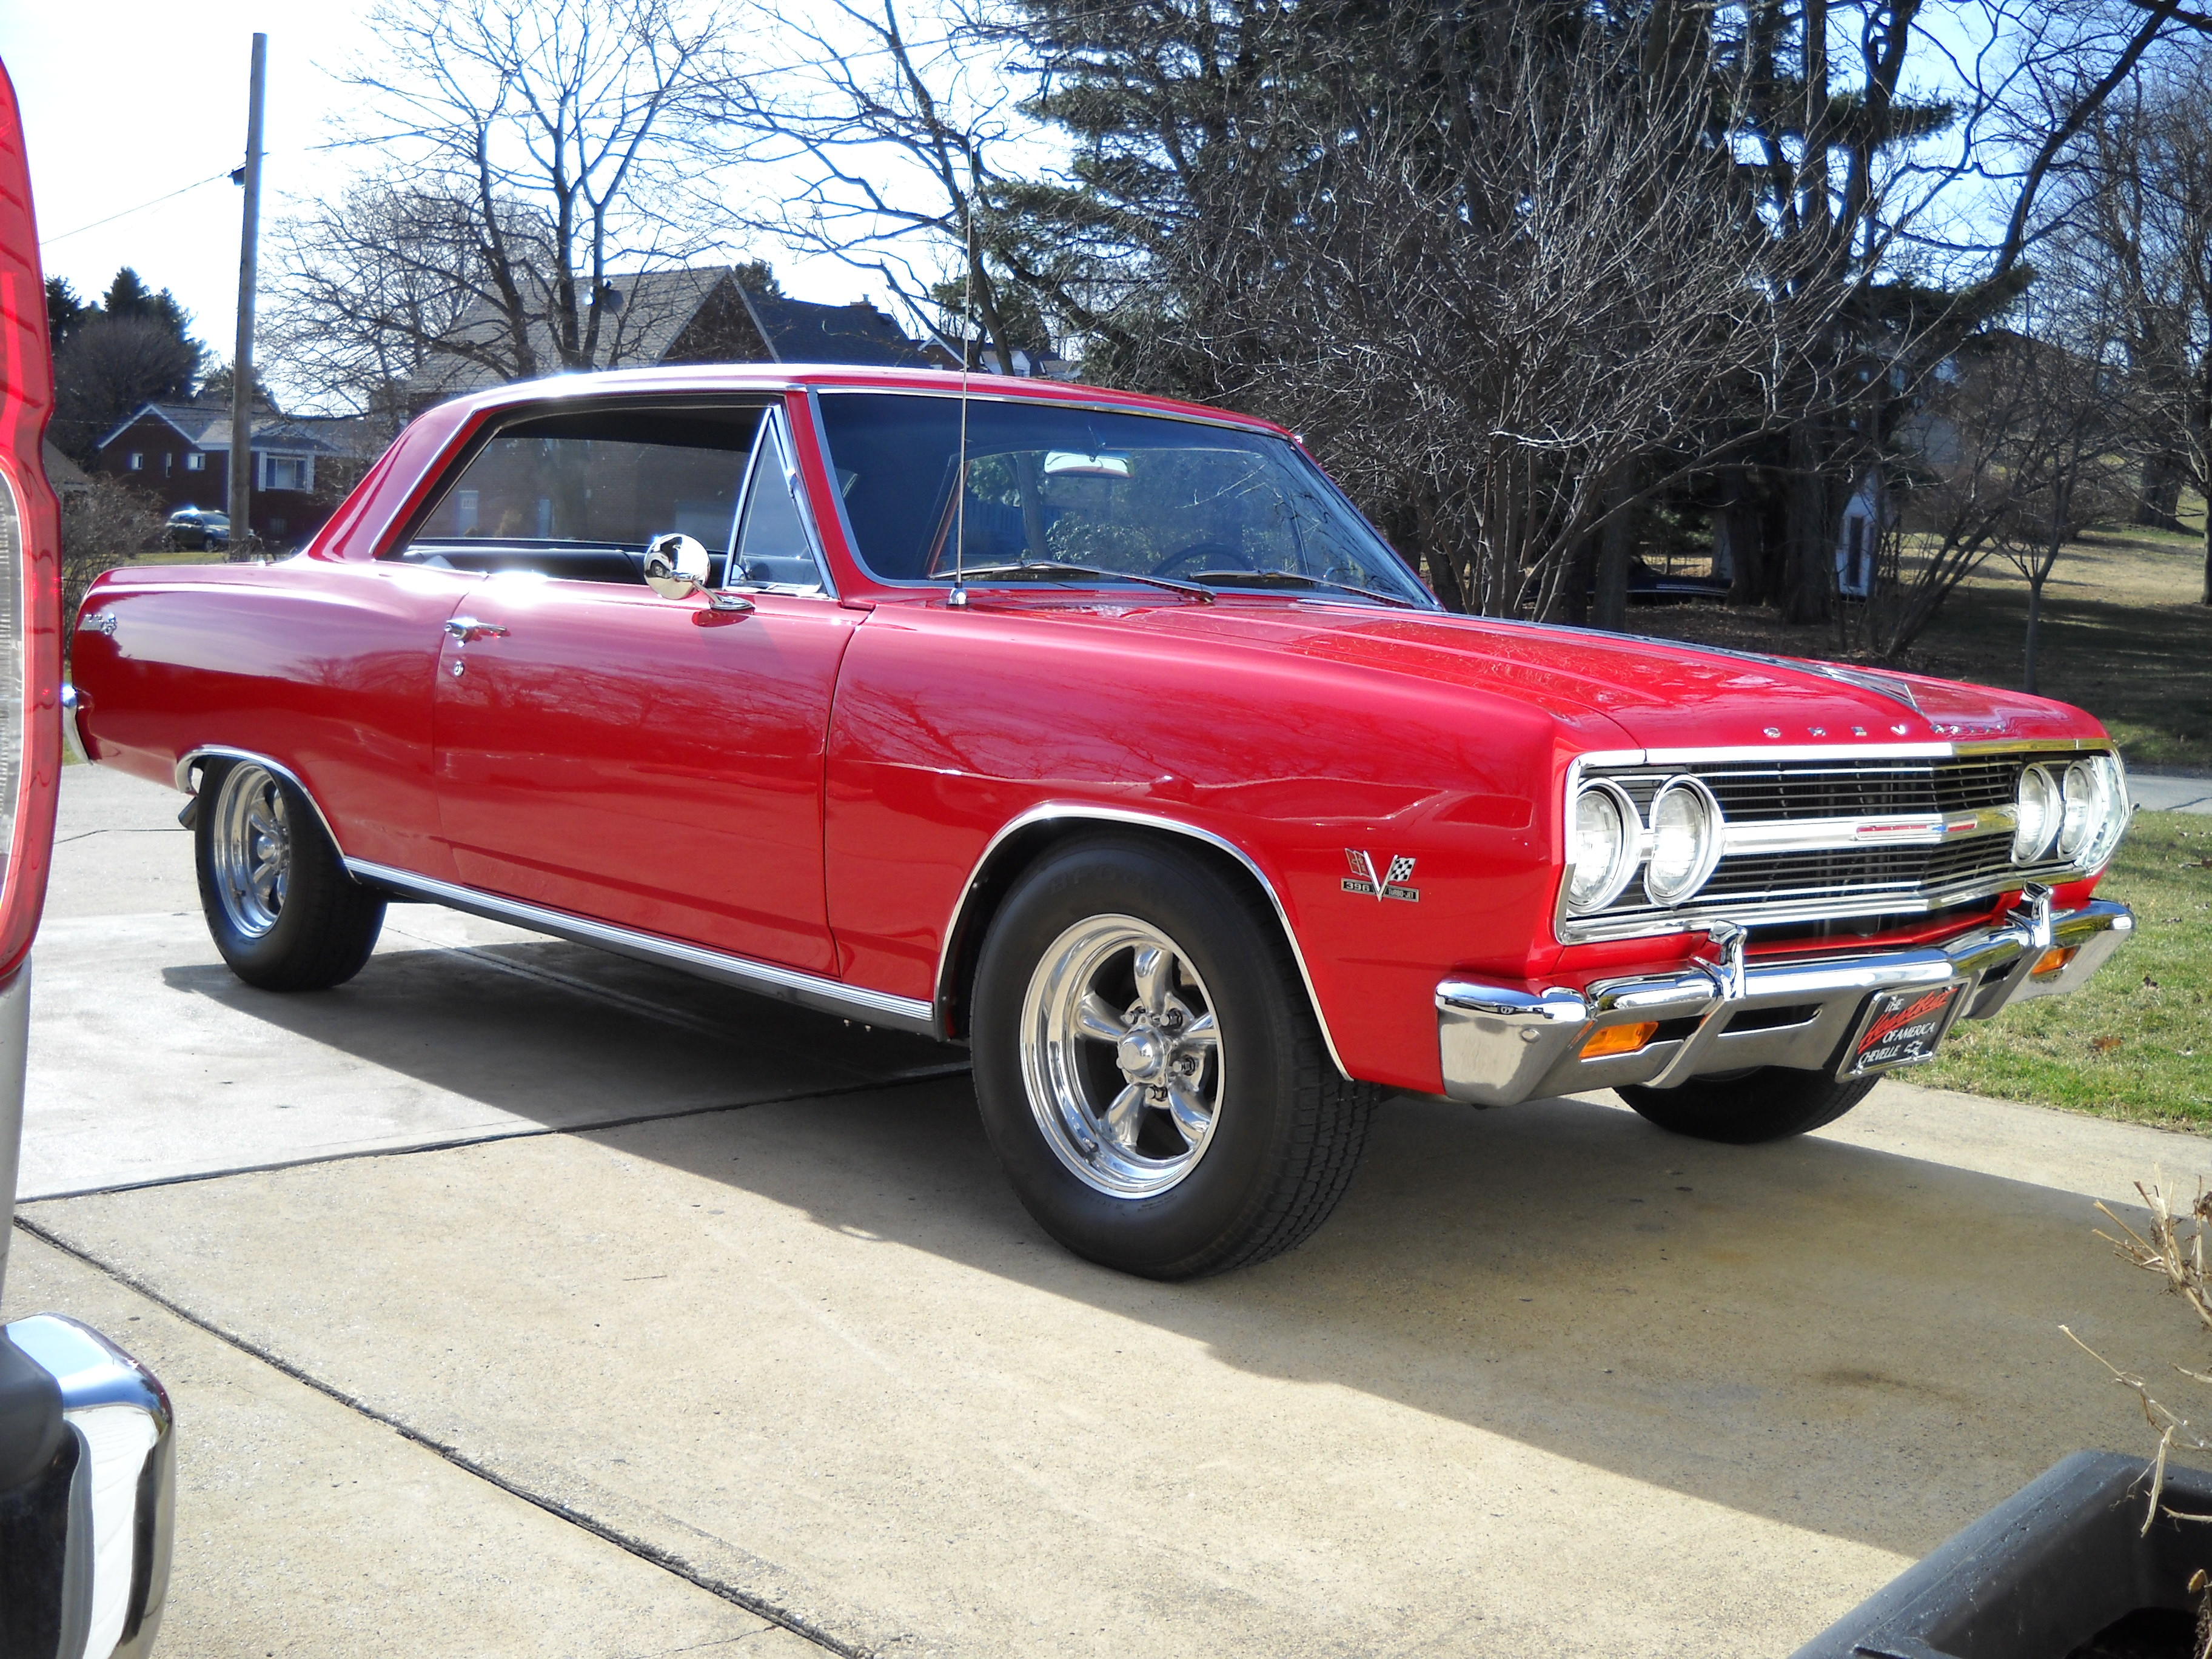 1965 Chevelle Ss396 Z16 201 Built And A Common 396 Engine Chevy Ss Hello I Have 64 That Ive Misunderstanding Finally Resolved